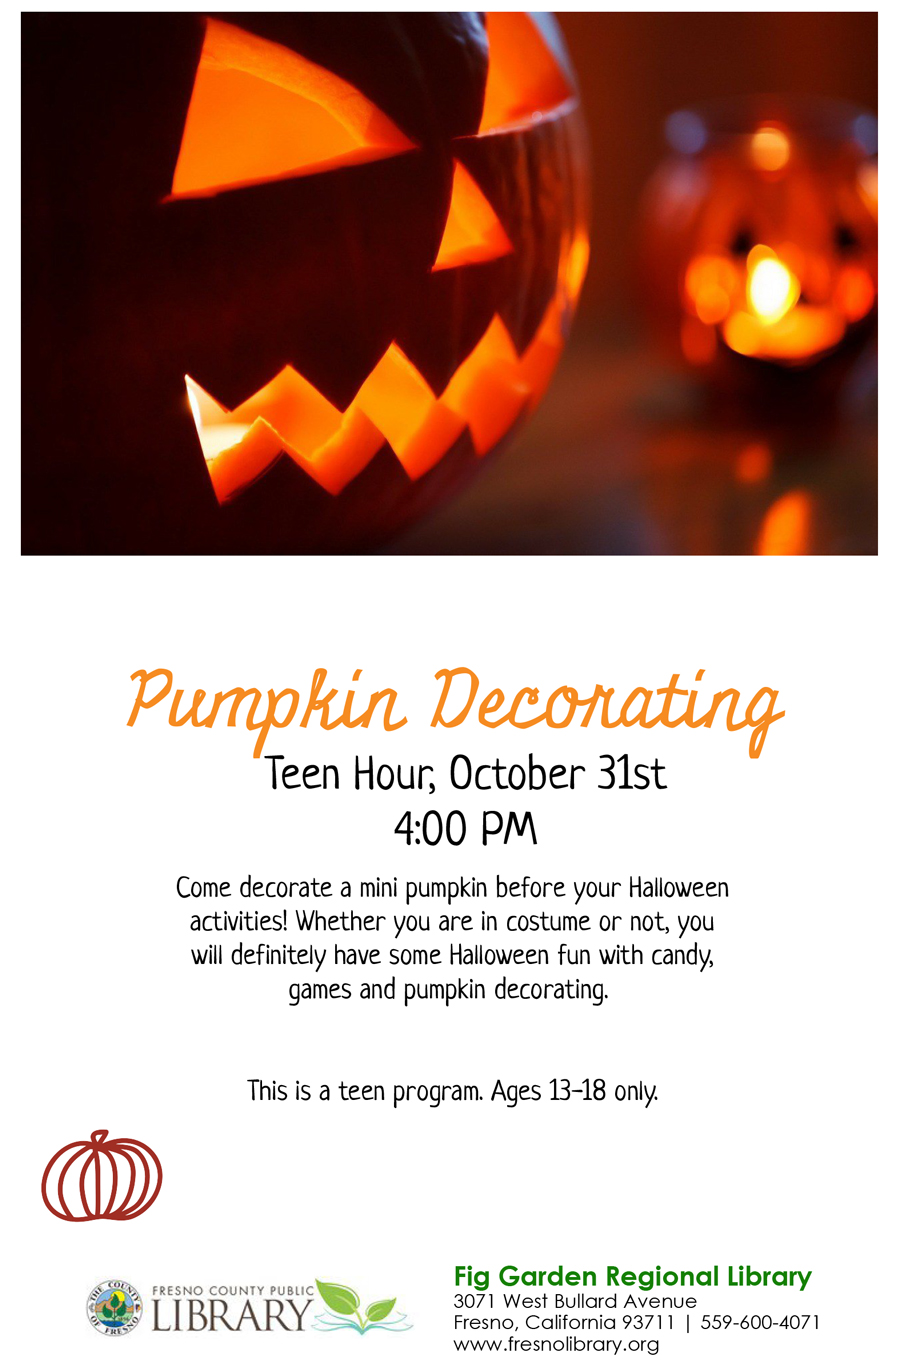 FIG_Pumpkin_Decorating_Flyer